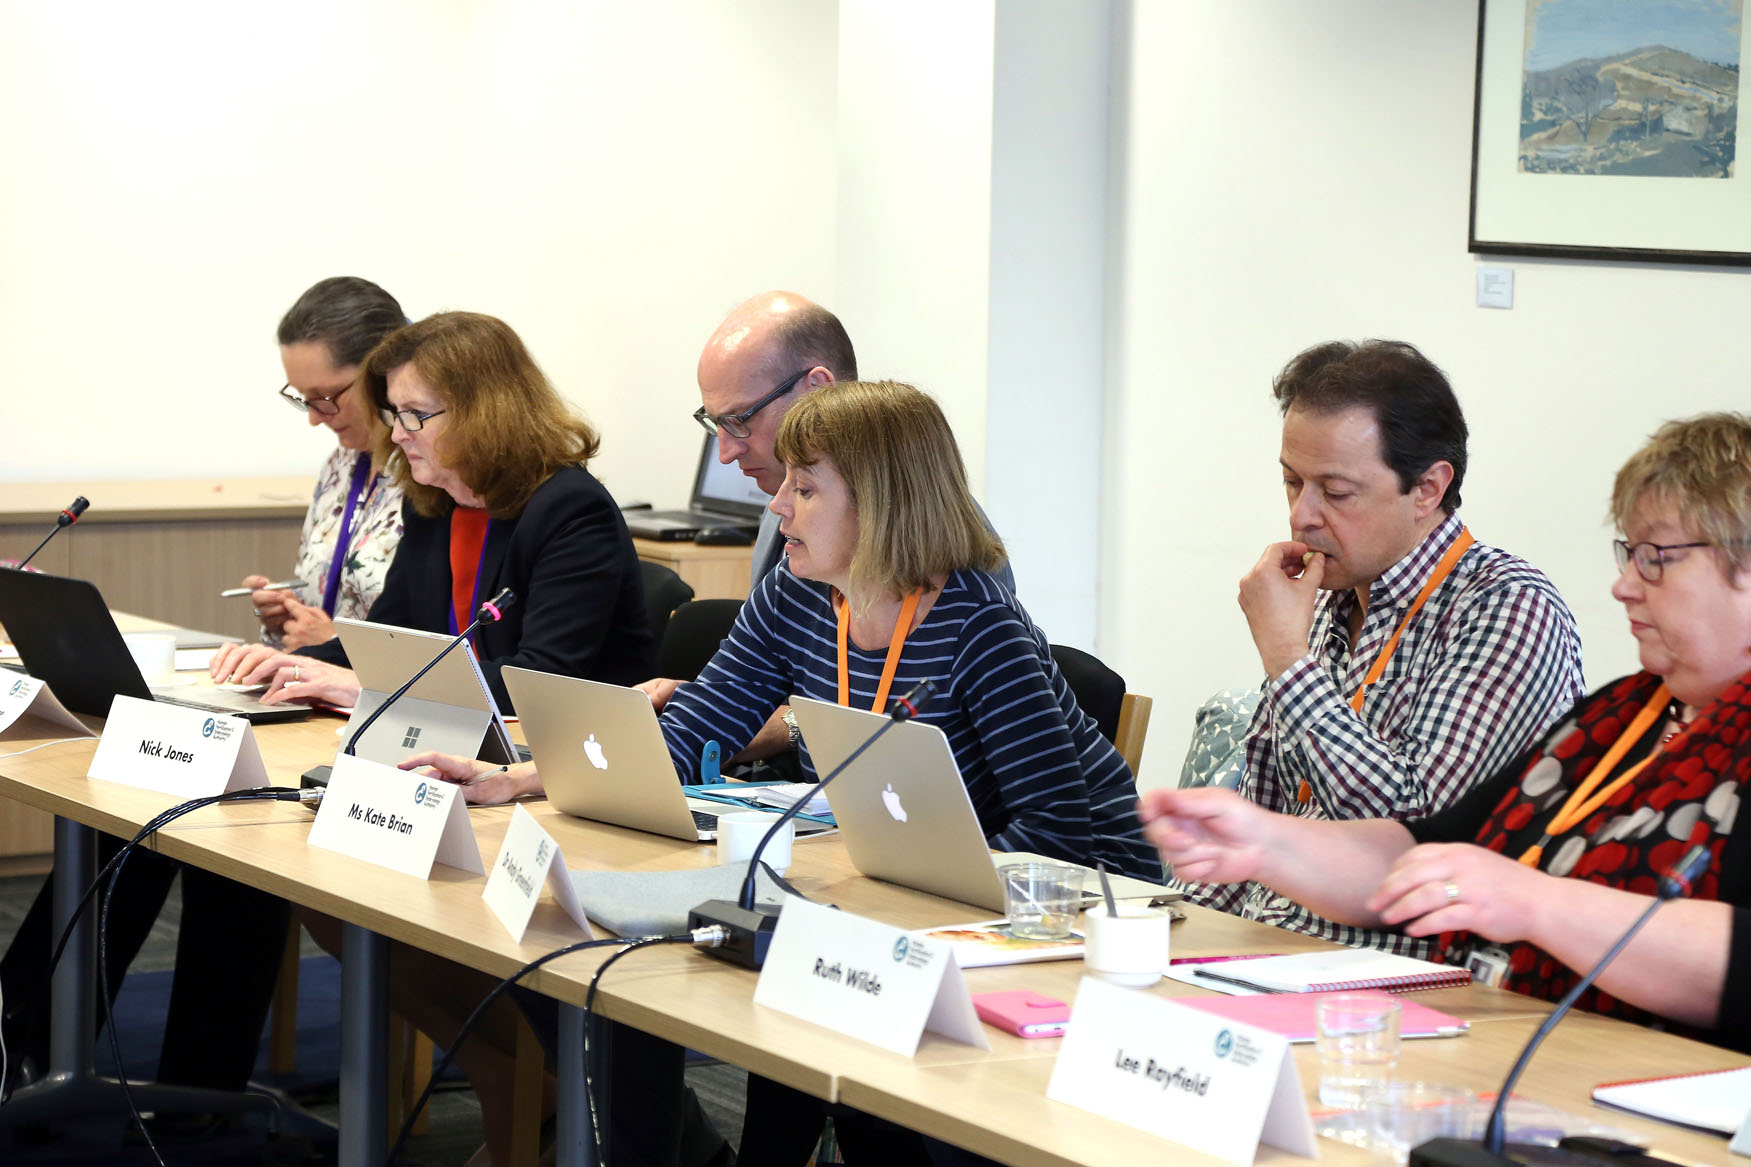 Members of the HFEA board sat along a table during an Authority meeting